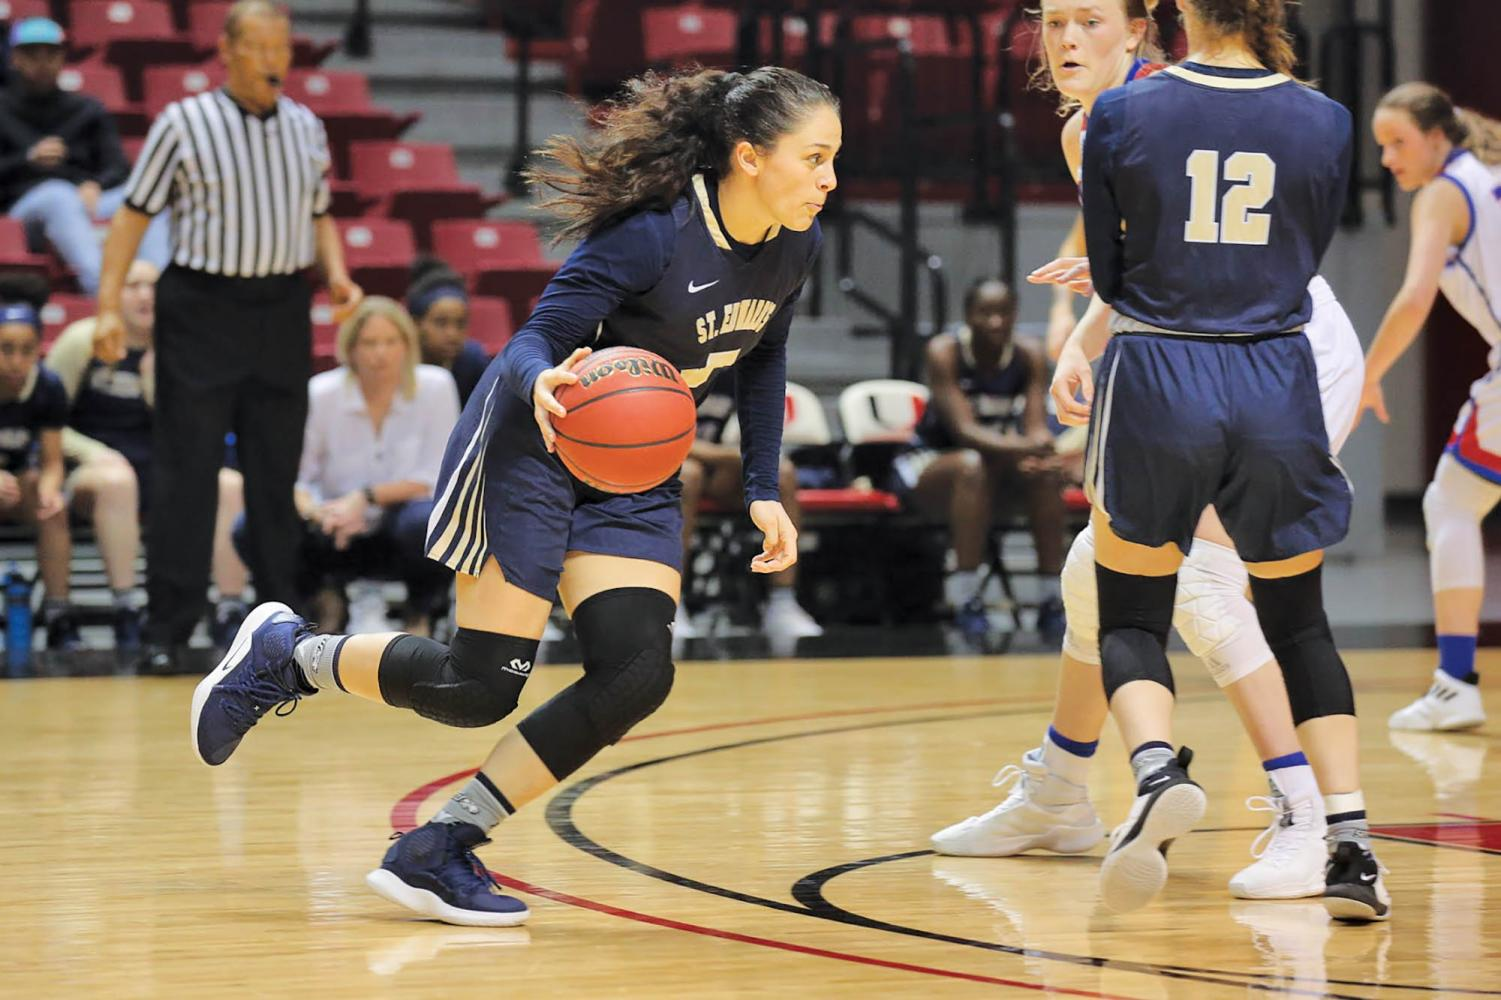 Senior forward Isabel Hernandez ends her collegiete career with an All-Heartland Conference First-Team selection.